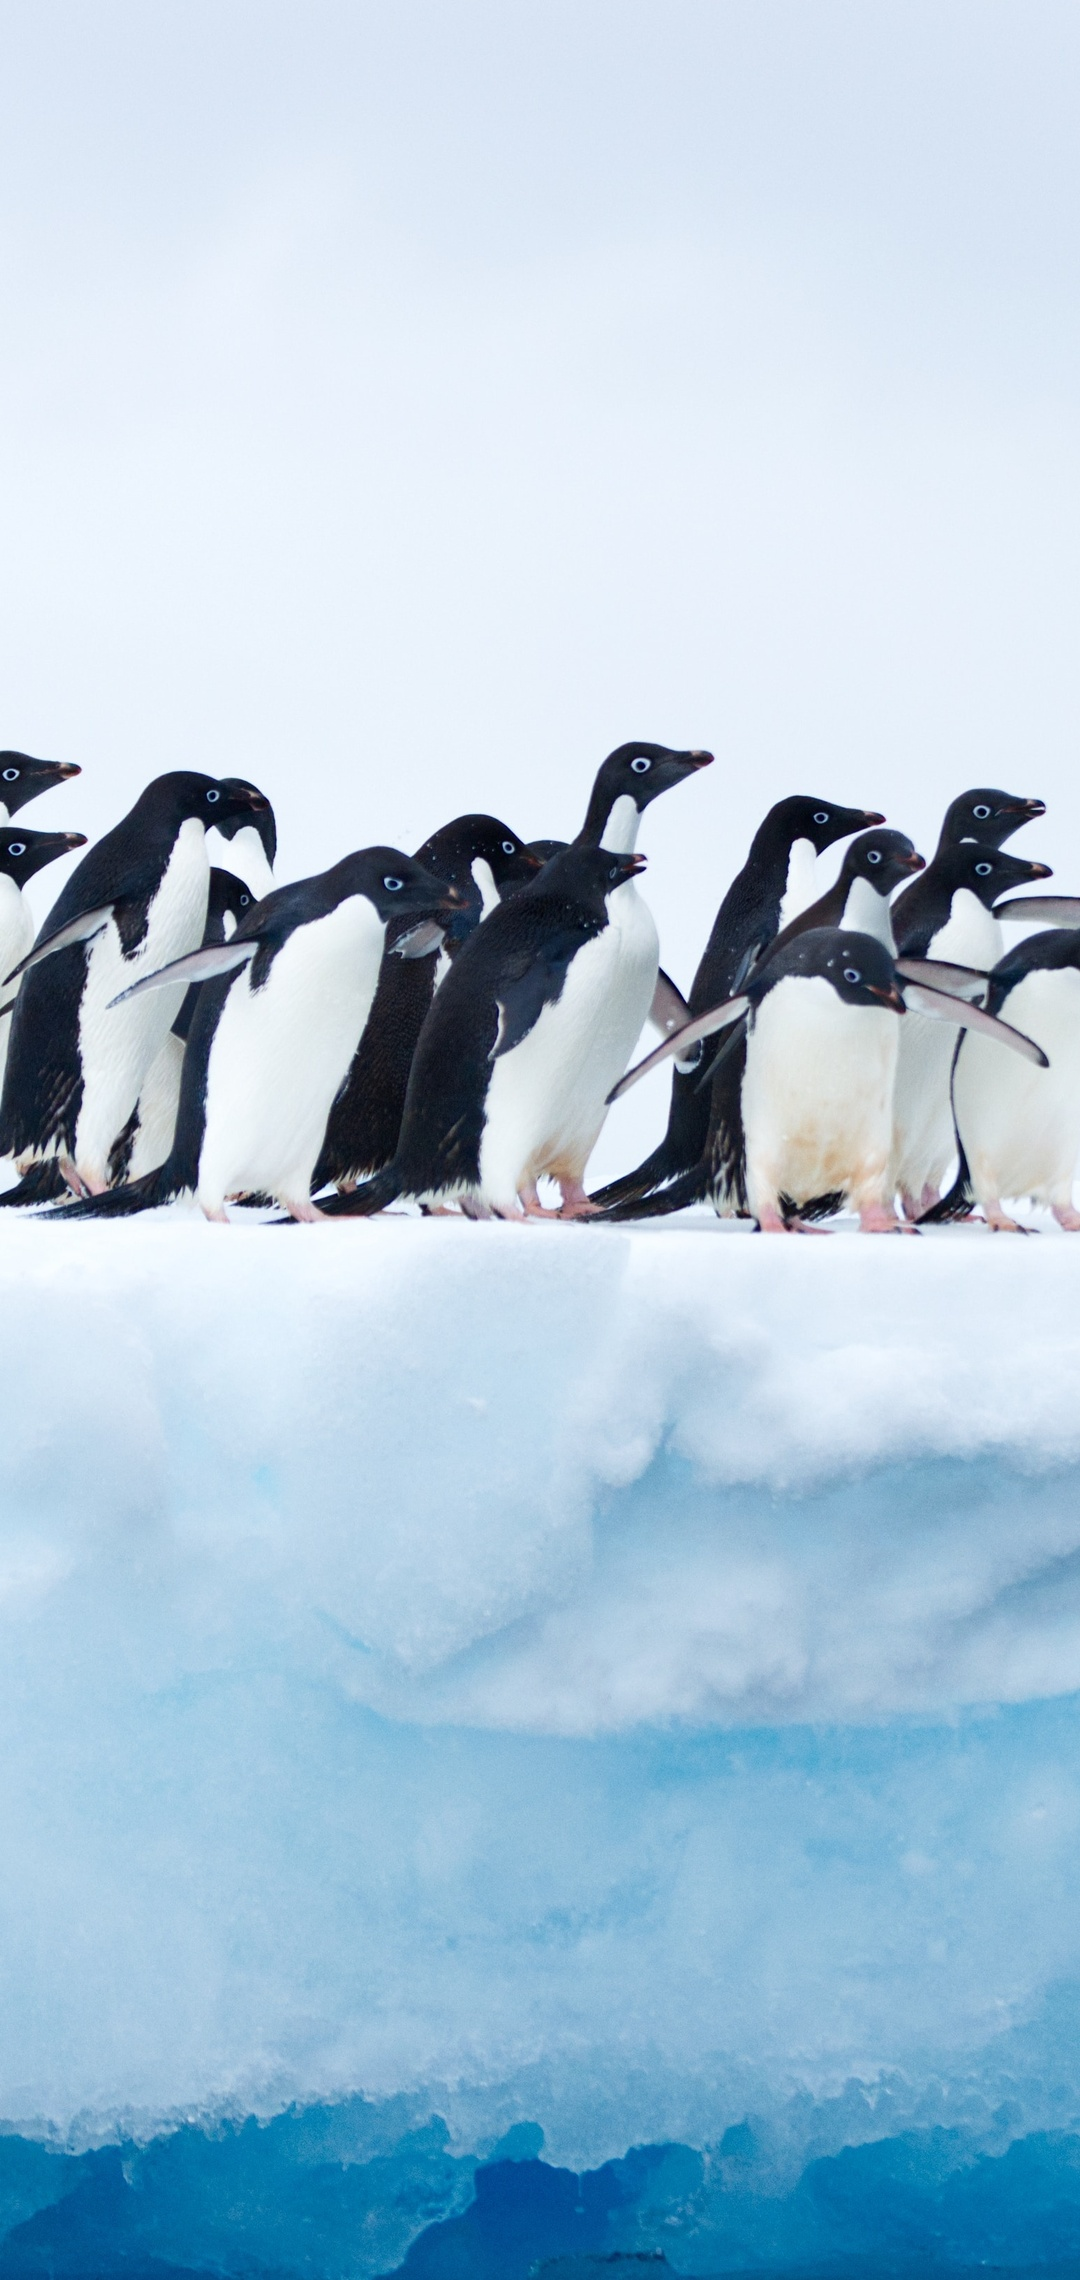 penguins-in-antarctica-62.jpg